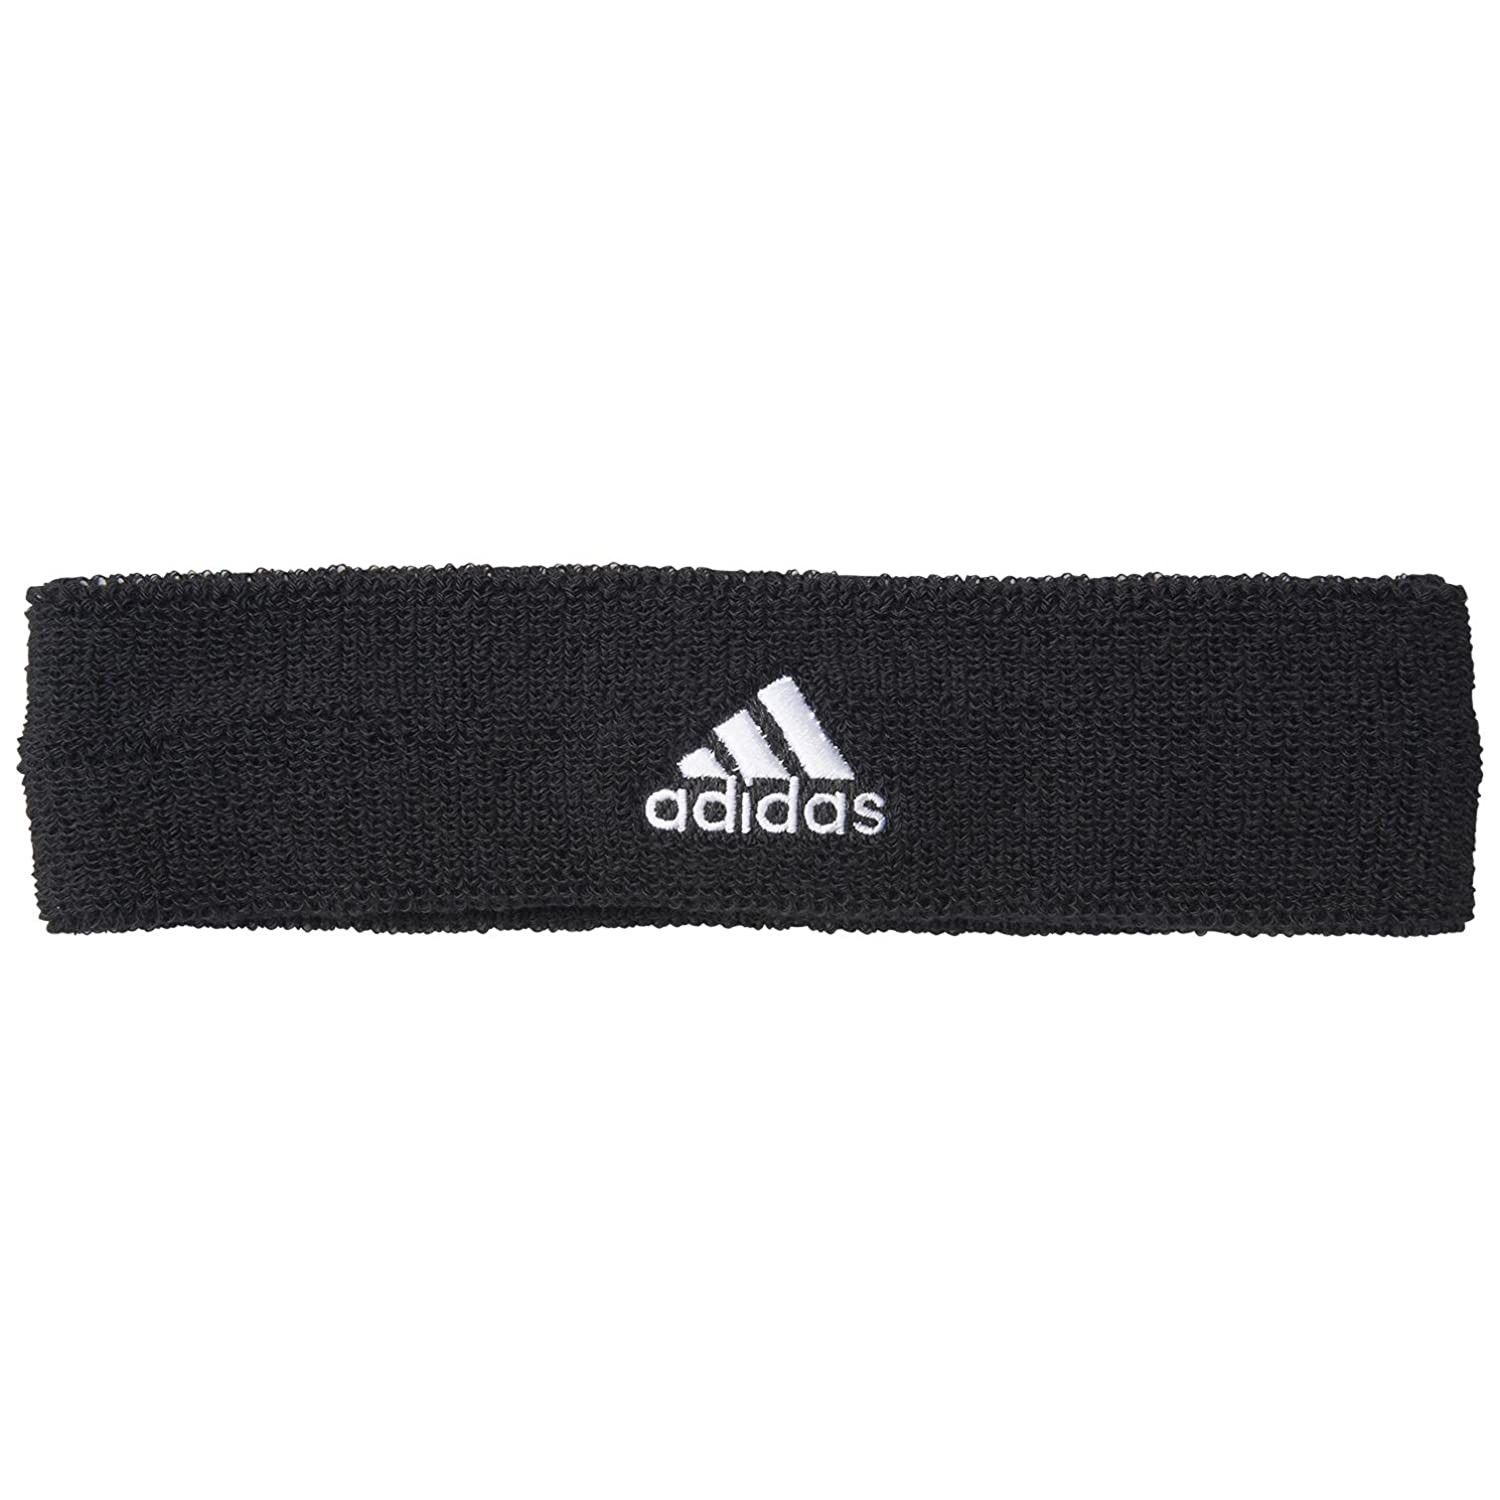 adidas Tennis Headband Sweat Head 6b081d01f16